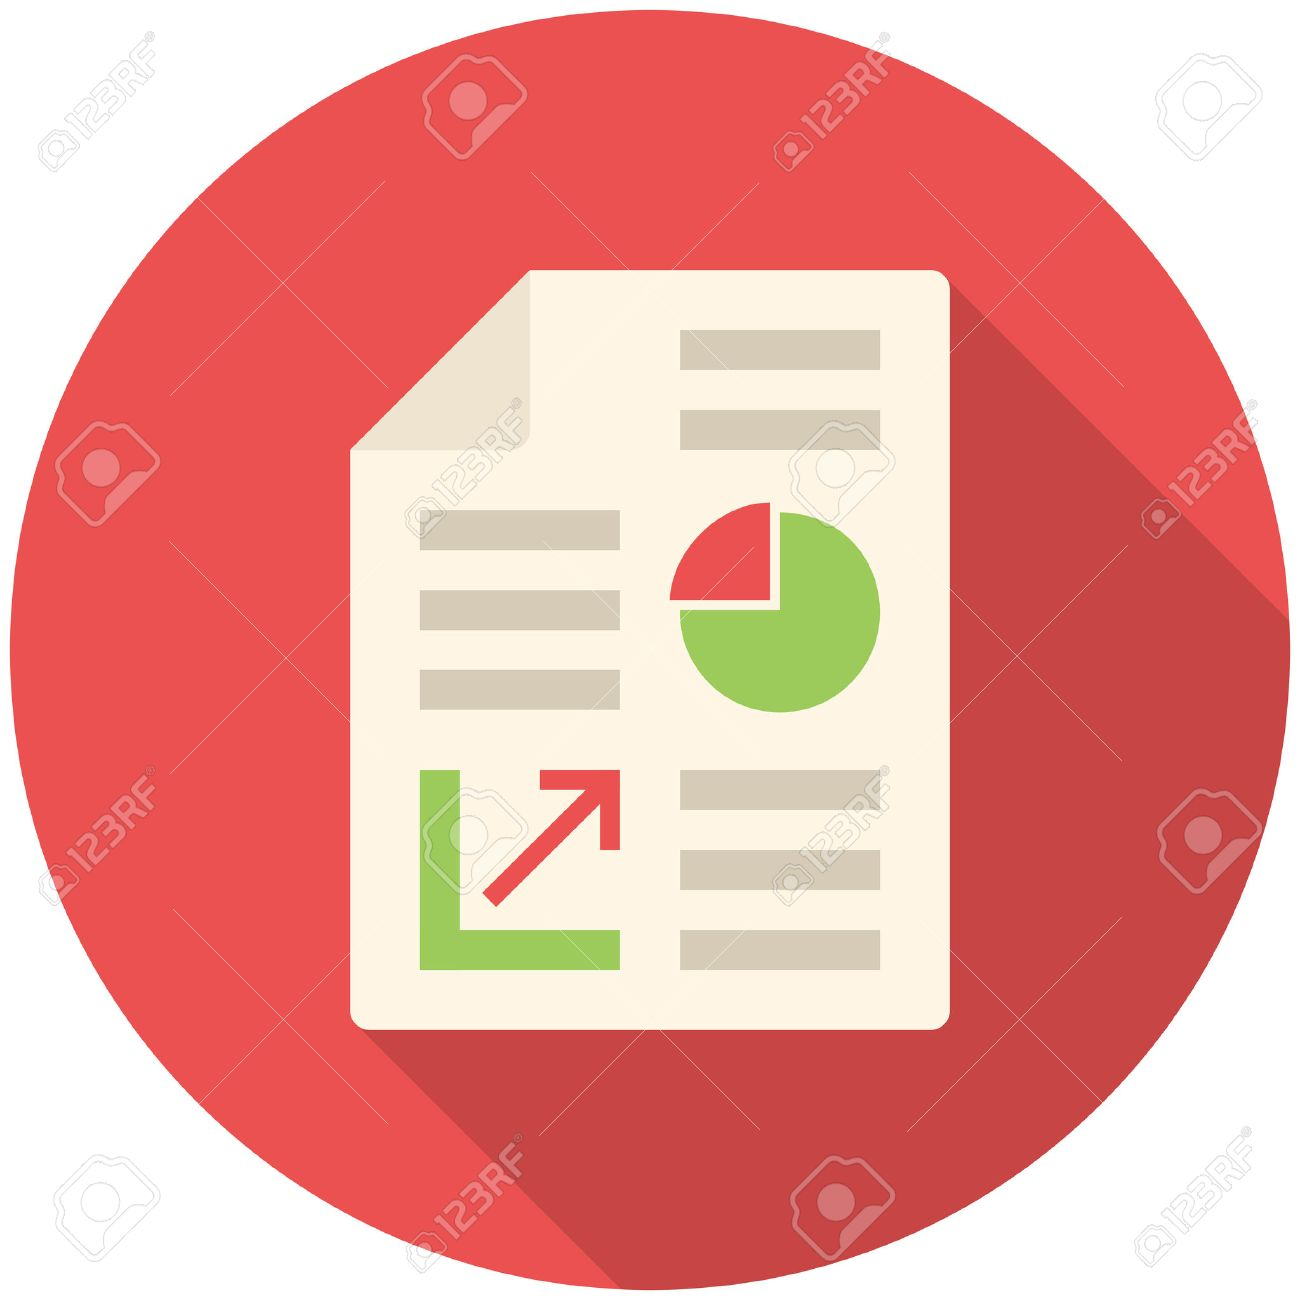 business report modern flat icon with long shadow royalty free